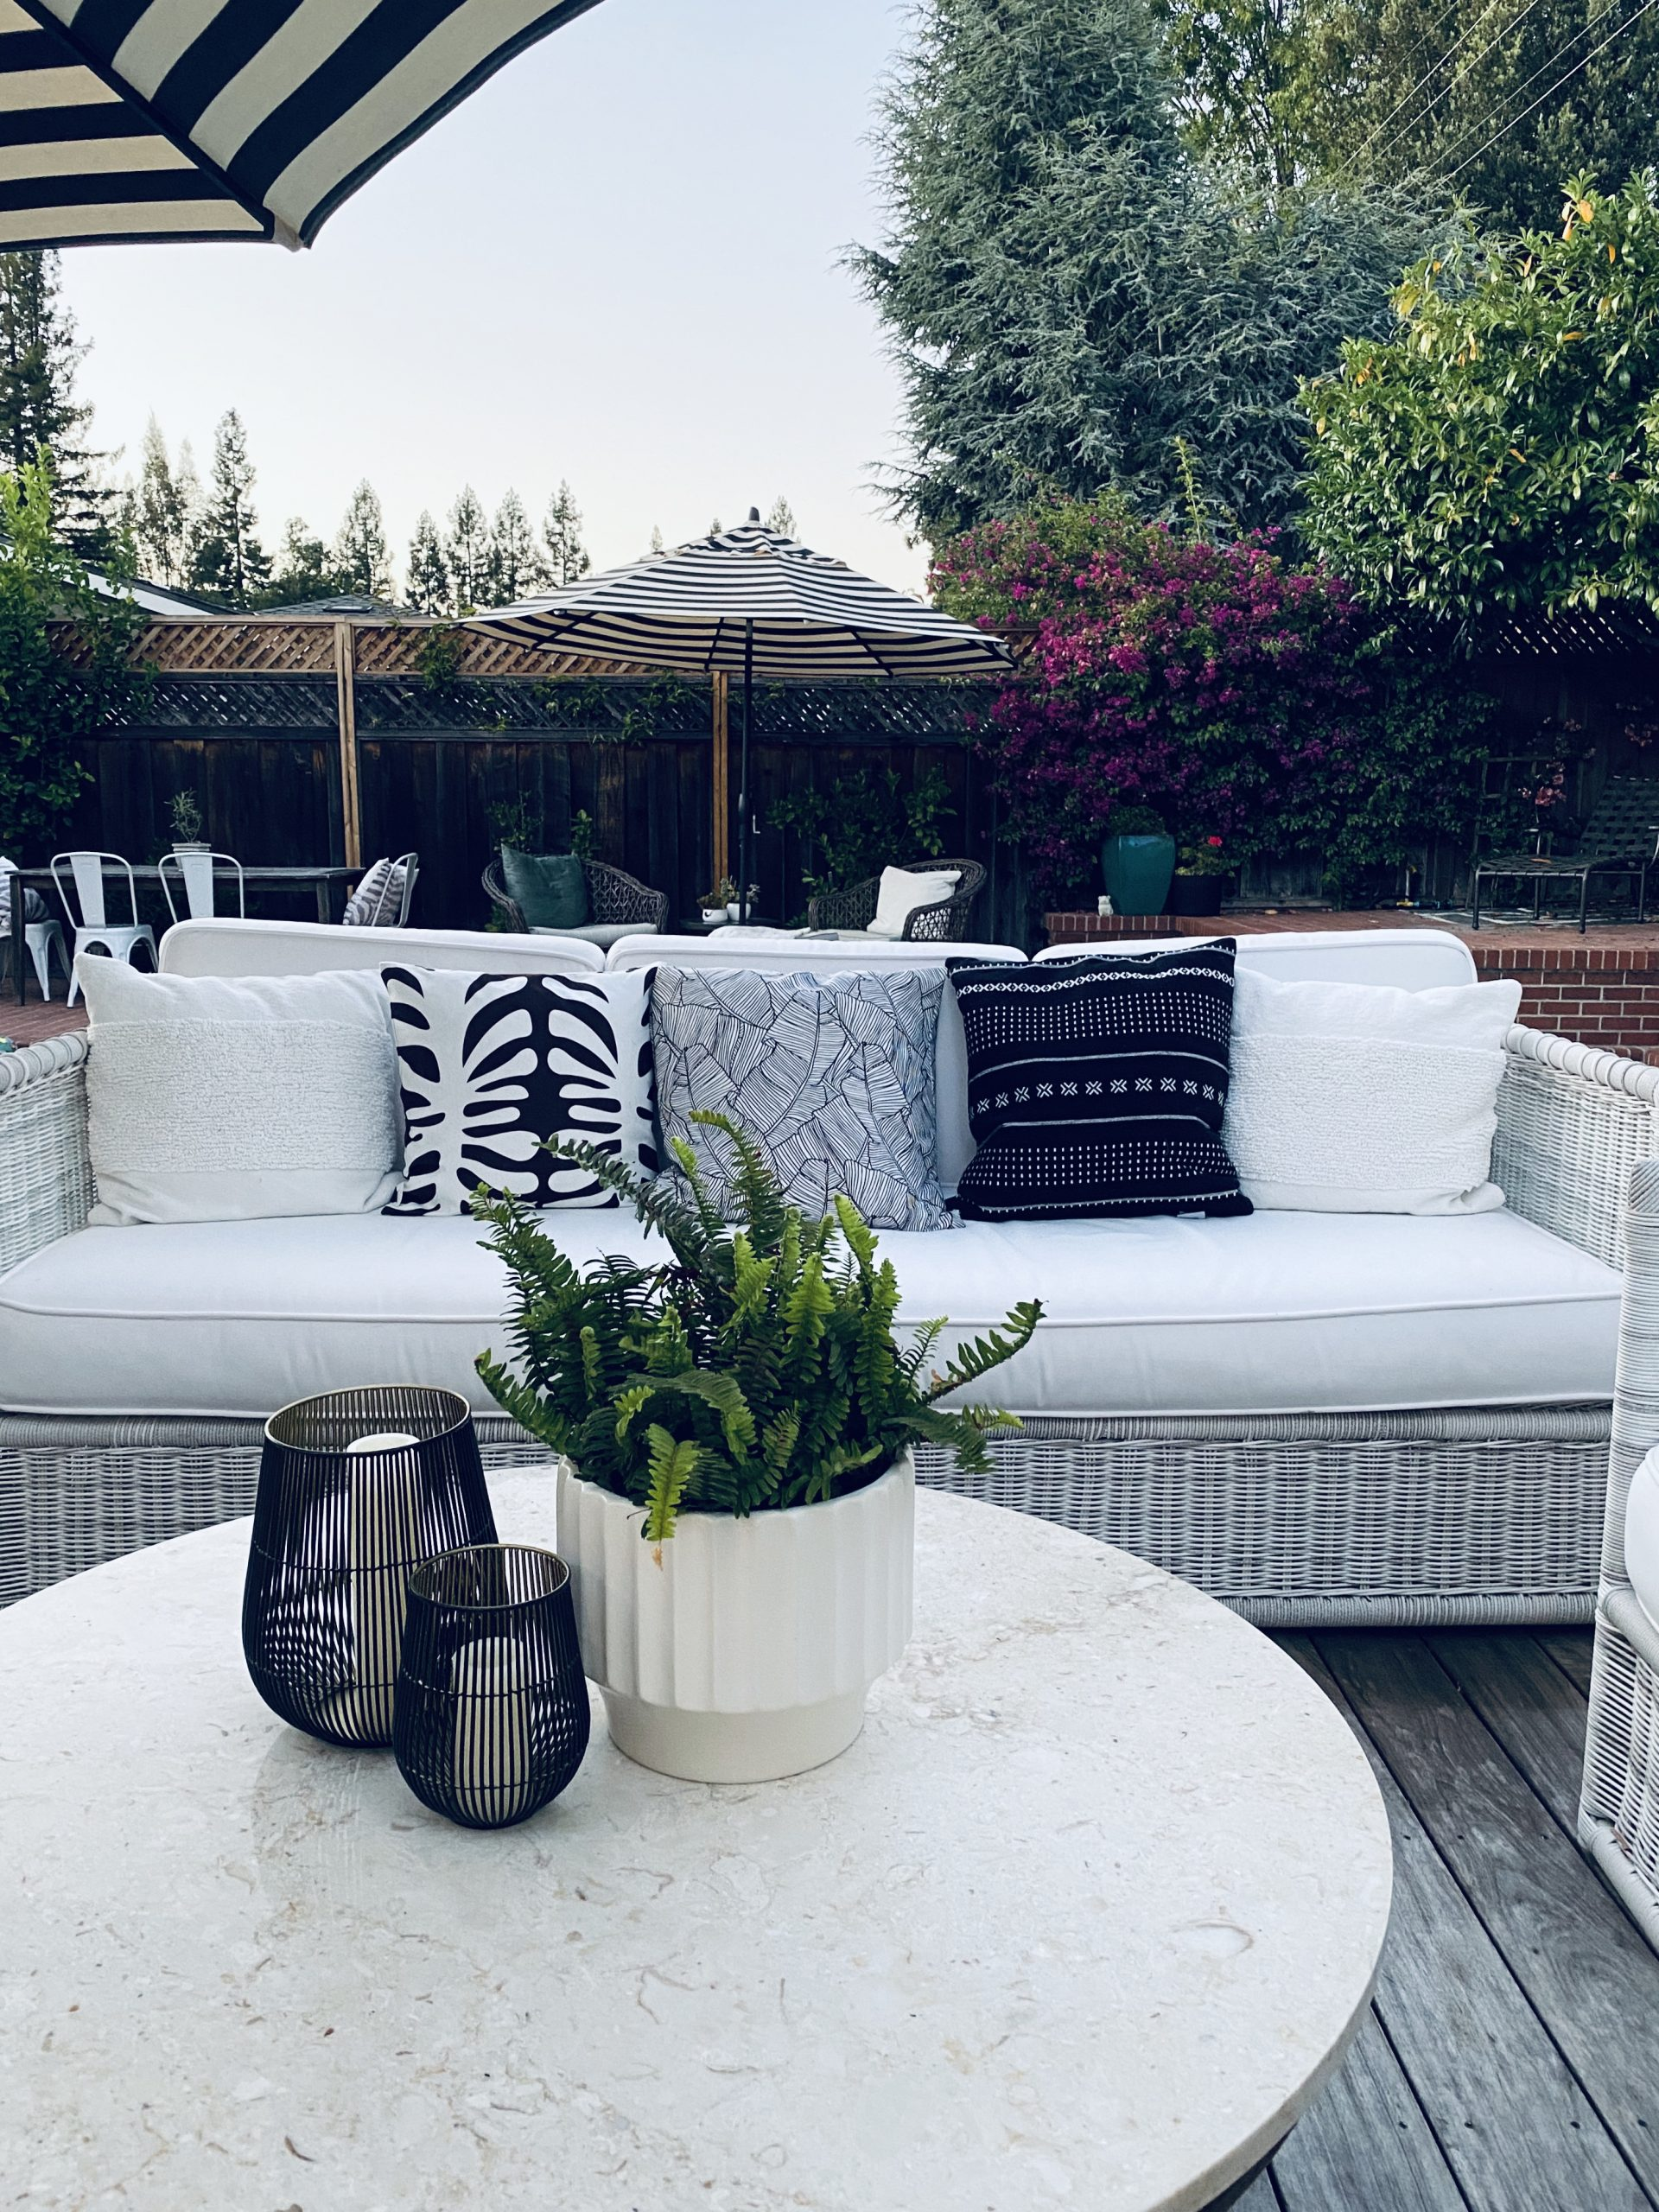 Outdoor Living With Style – 9  Bloggers  Share Their Spaces